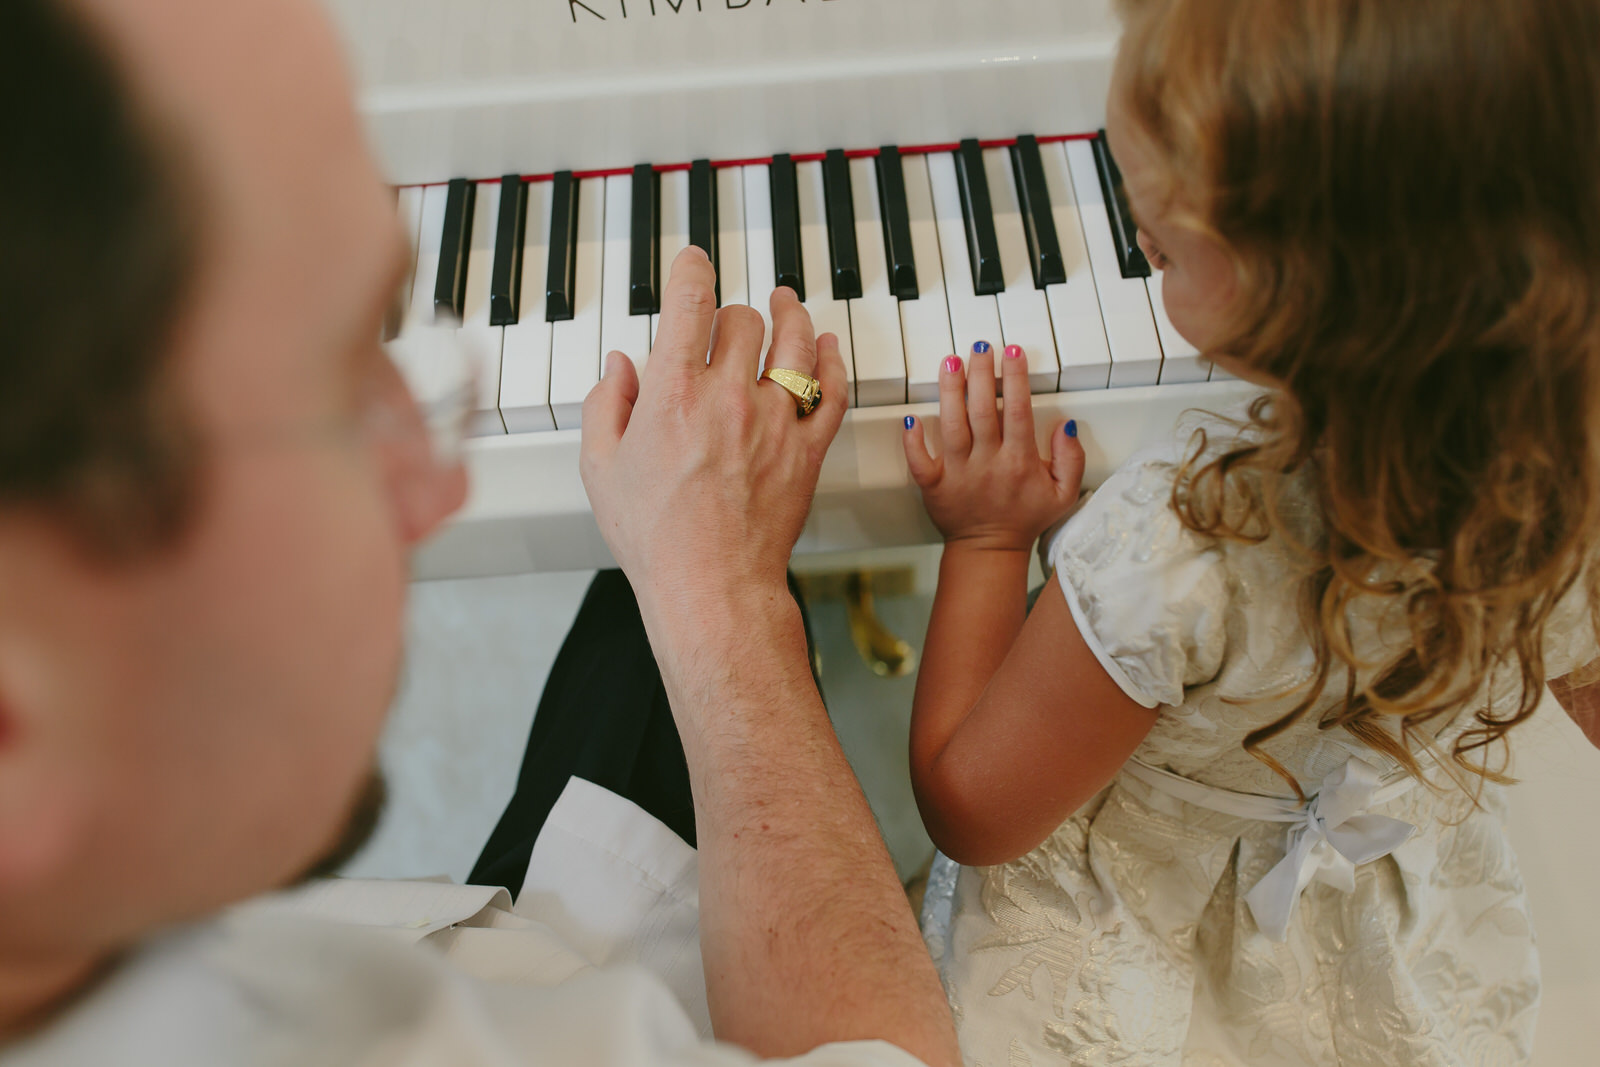 daddy_daughter_playing_piano_tiny_house_photo.jpg